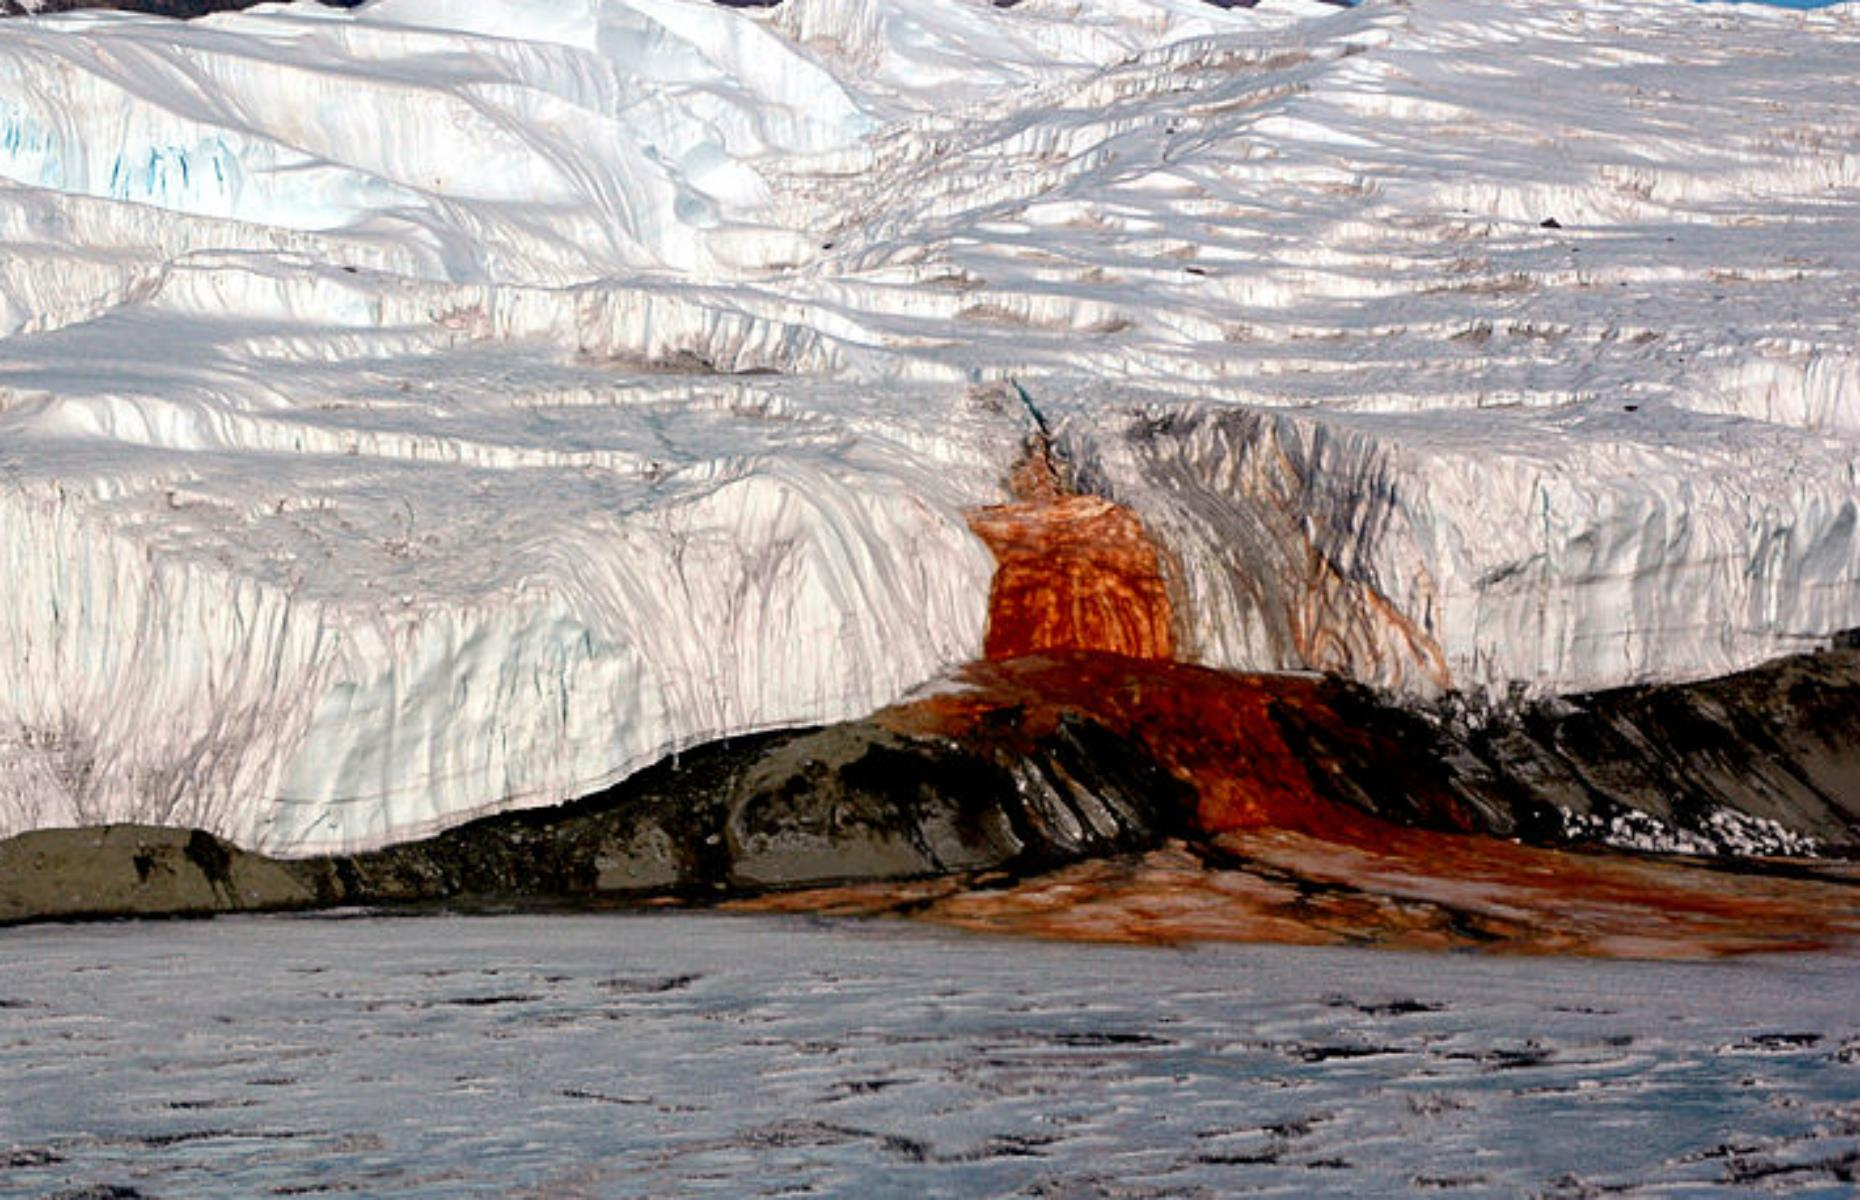 Slide 8 of 31: The world's coldest and perhaps most enigmatic continent is home to a blood-red waterfall that seeps into the ice. Geologists originally thought the red color was due to algae but the truth is actually much more interesting. It started around two million years ago when a saltwater pool was trapped inside Taylor Glacier. The sealed, airless lake's high iron content and salinity caused the rust-red color that eventually oozed out of a fissure in the ice.